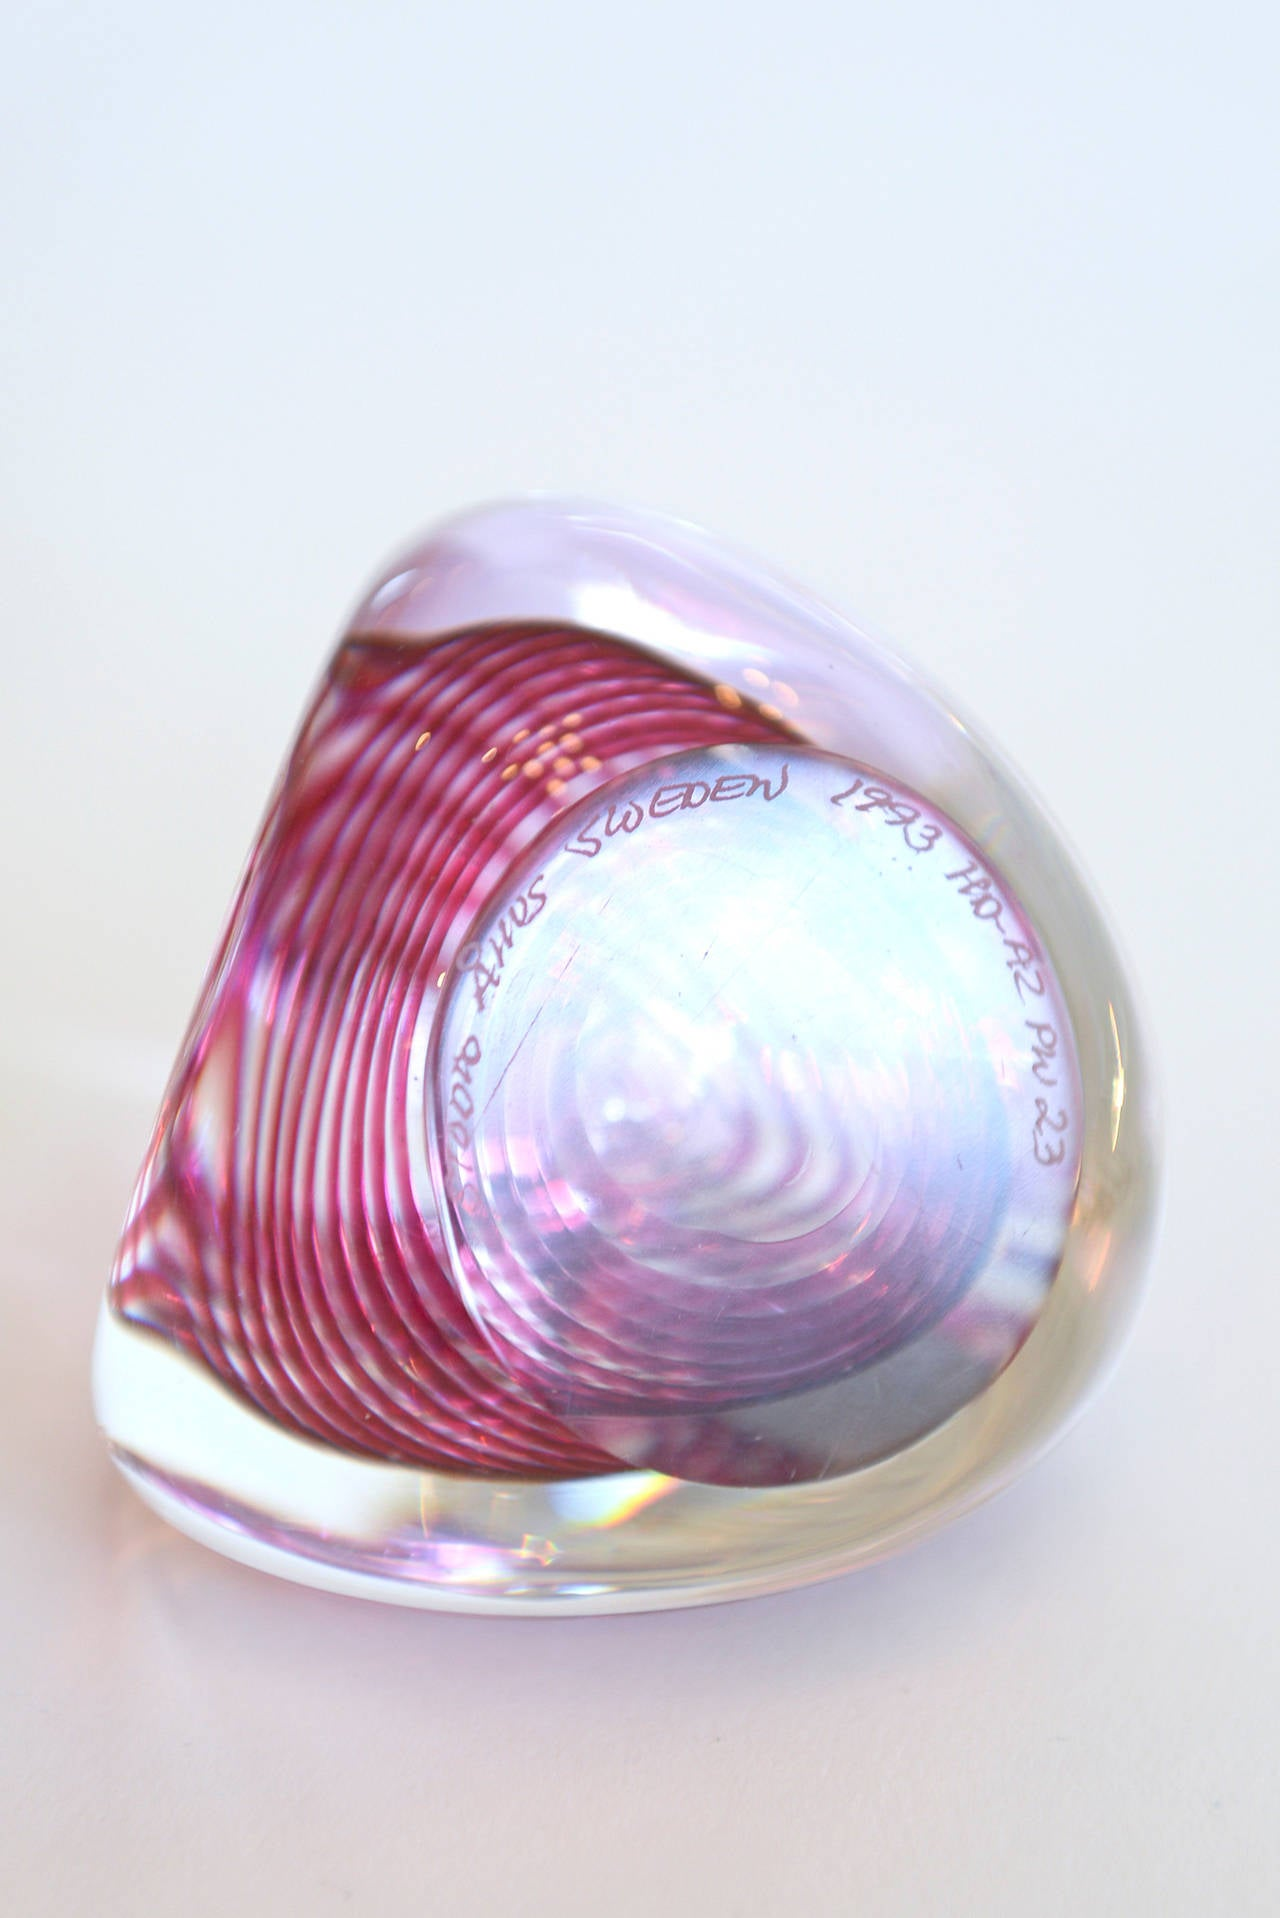 Optical Swedish Glass Paperweight or Object Signed Desk Accessory For Sale 1